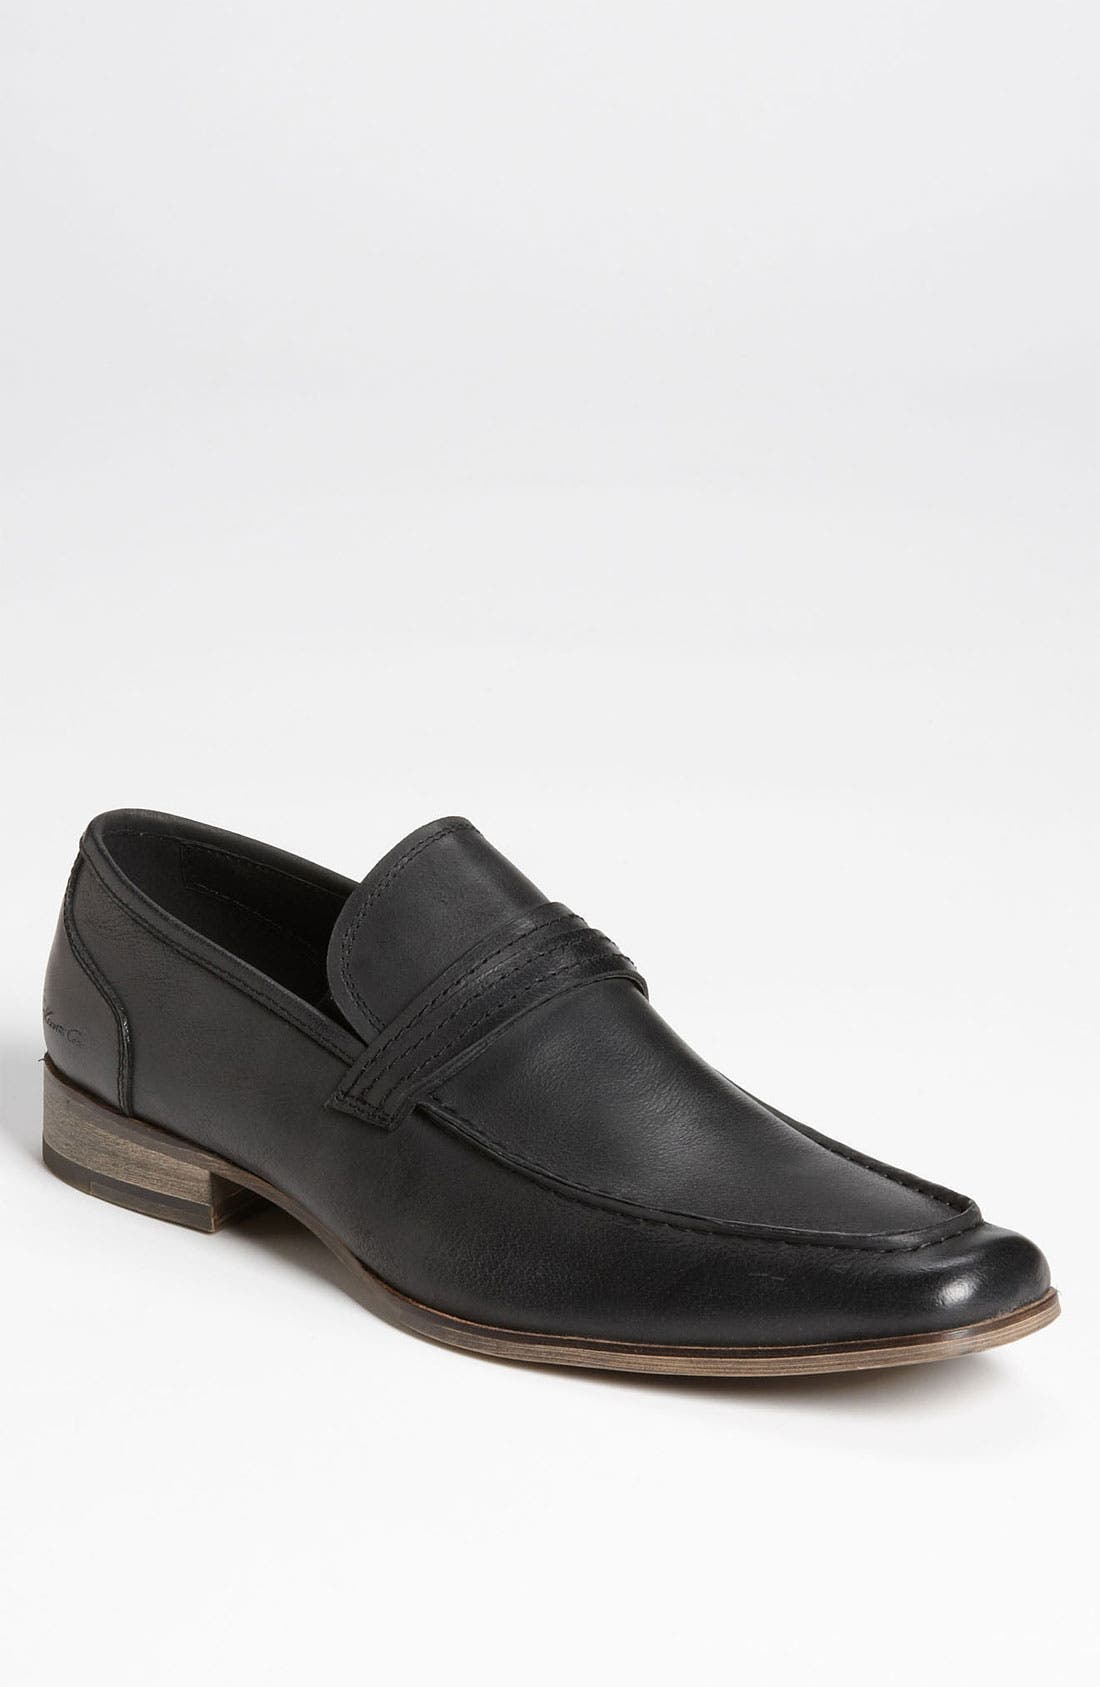 Alternate Image 1 Selected - Kenneth Cole New York 'Vic-tory Dance' Loafer